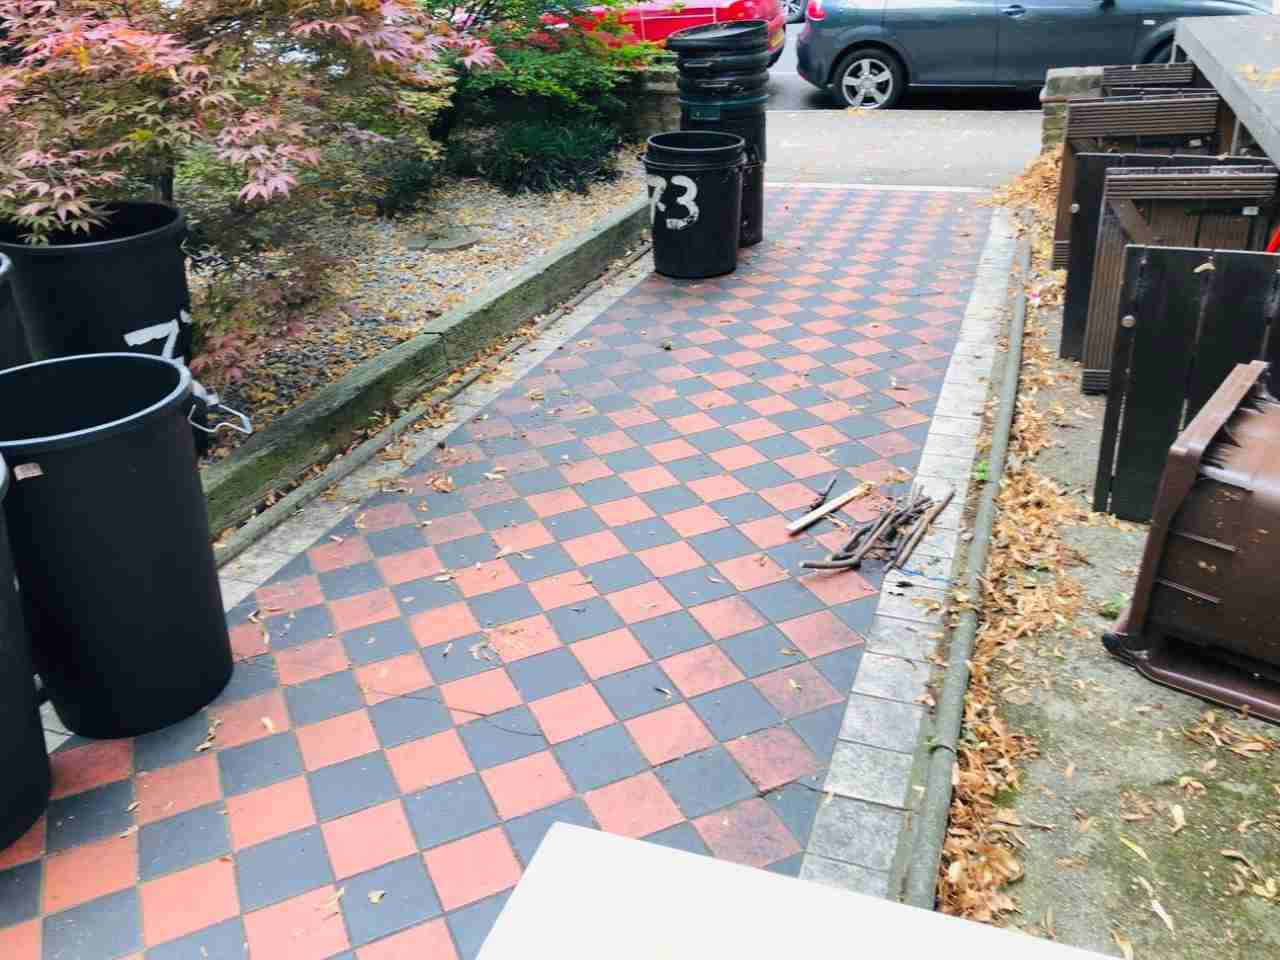 commercial patio cleaning company Finsbury Park